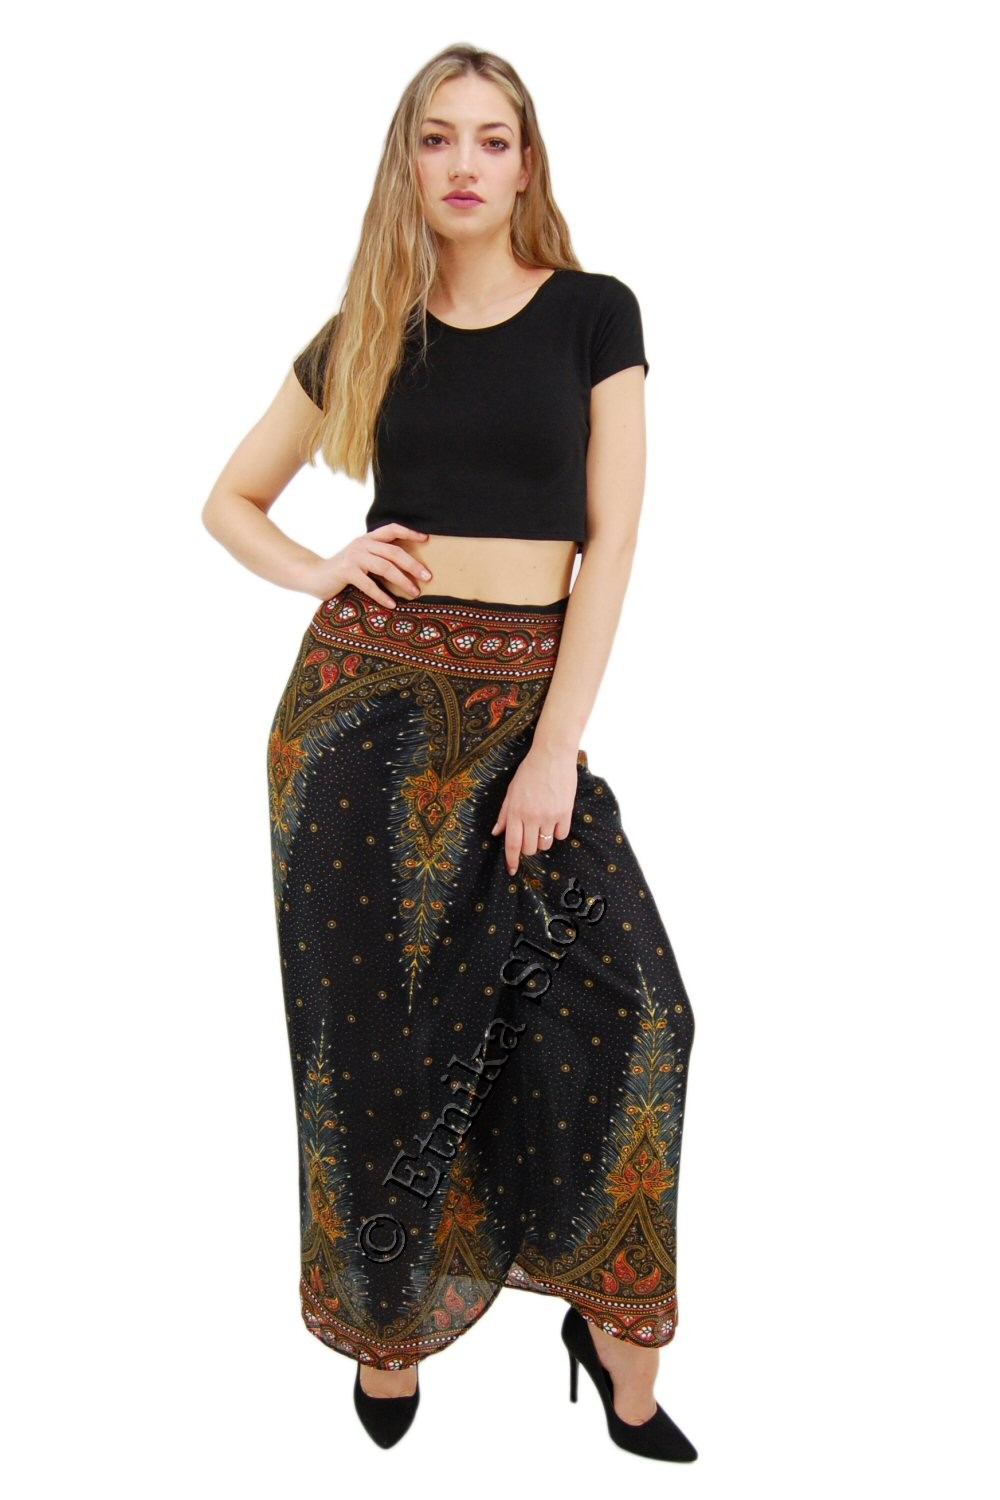 LONG SUMMER SKIRTS AB-BCK06BA - Oriente Import S.r.l.